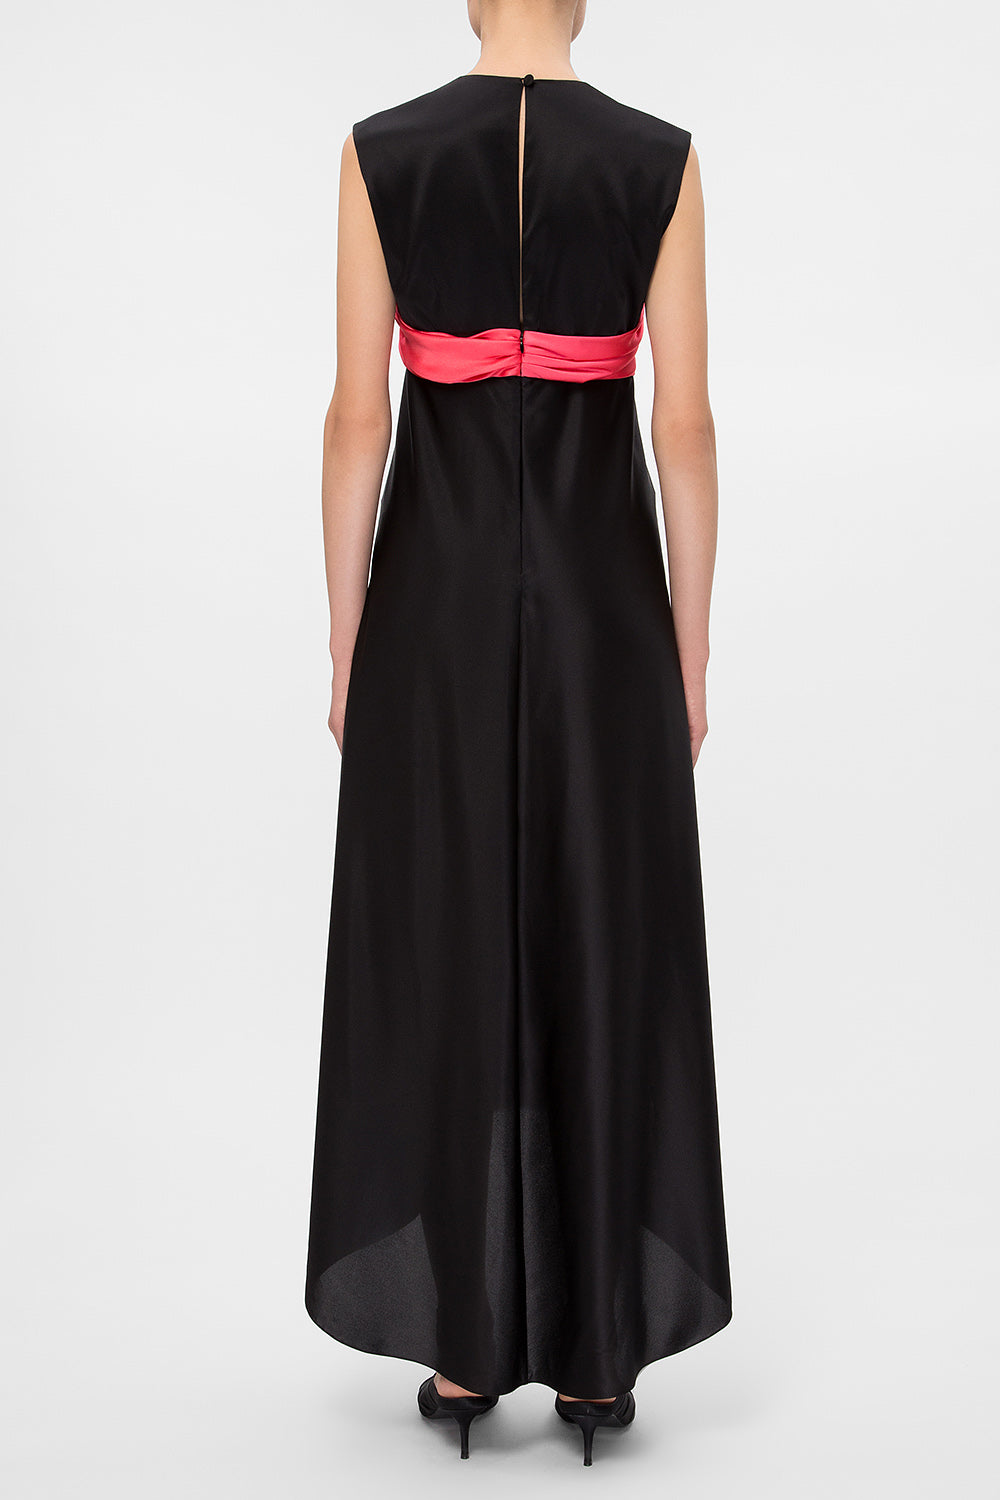 Silk dress with contrast bodice